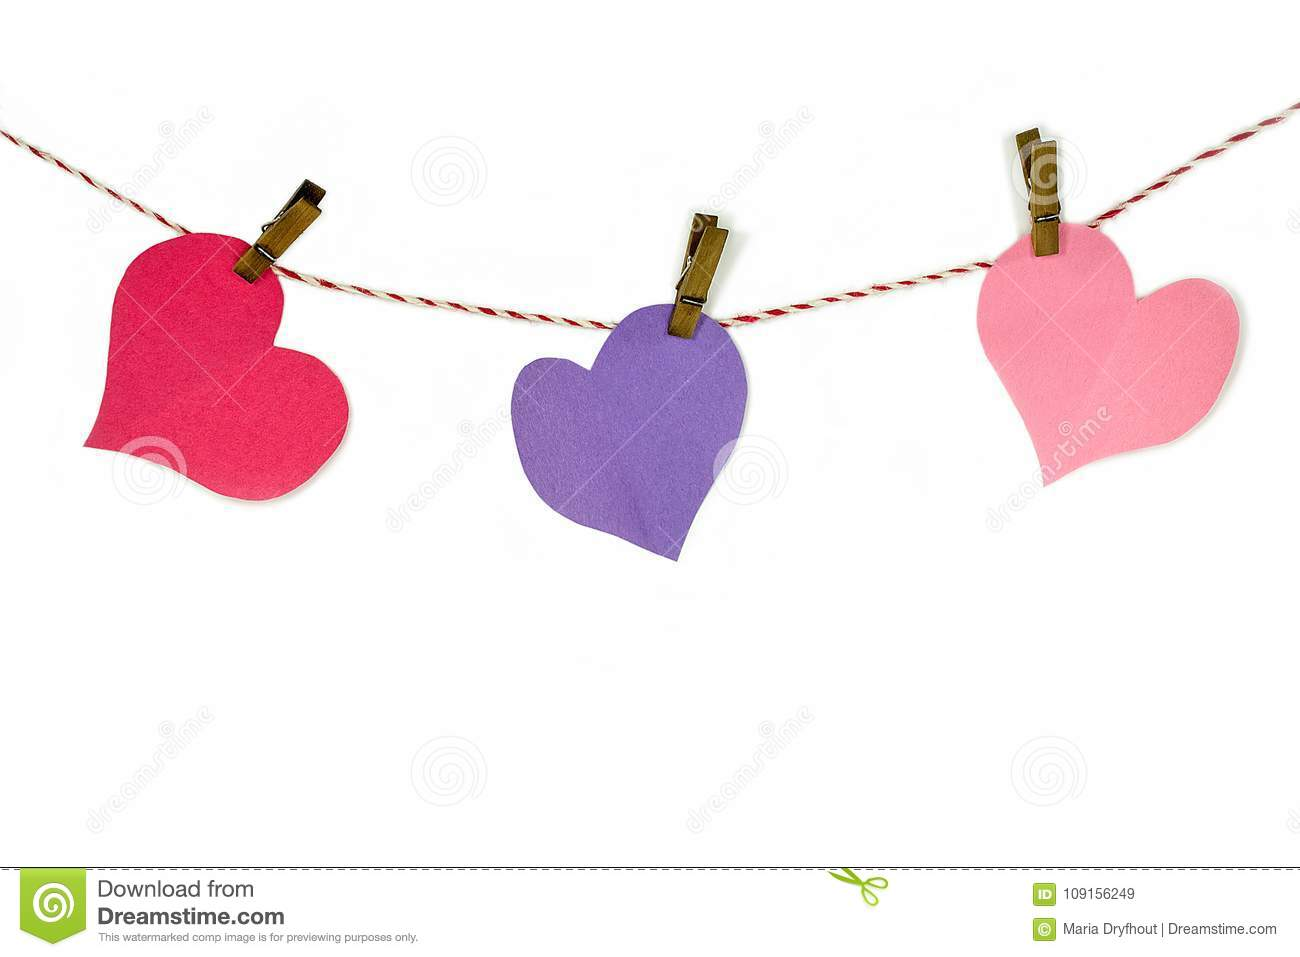 Clip Art Line Of Hearts : Paper hearts and clothespins on string stock image of